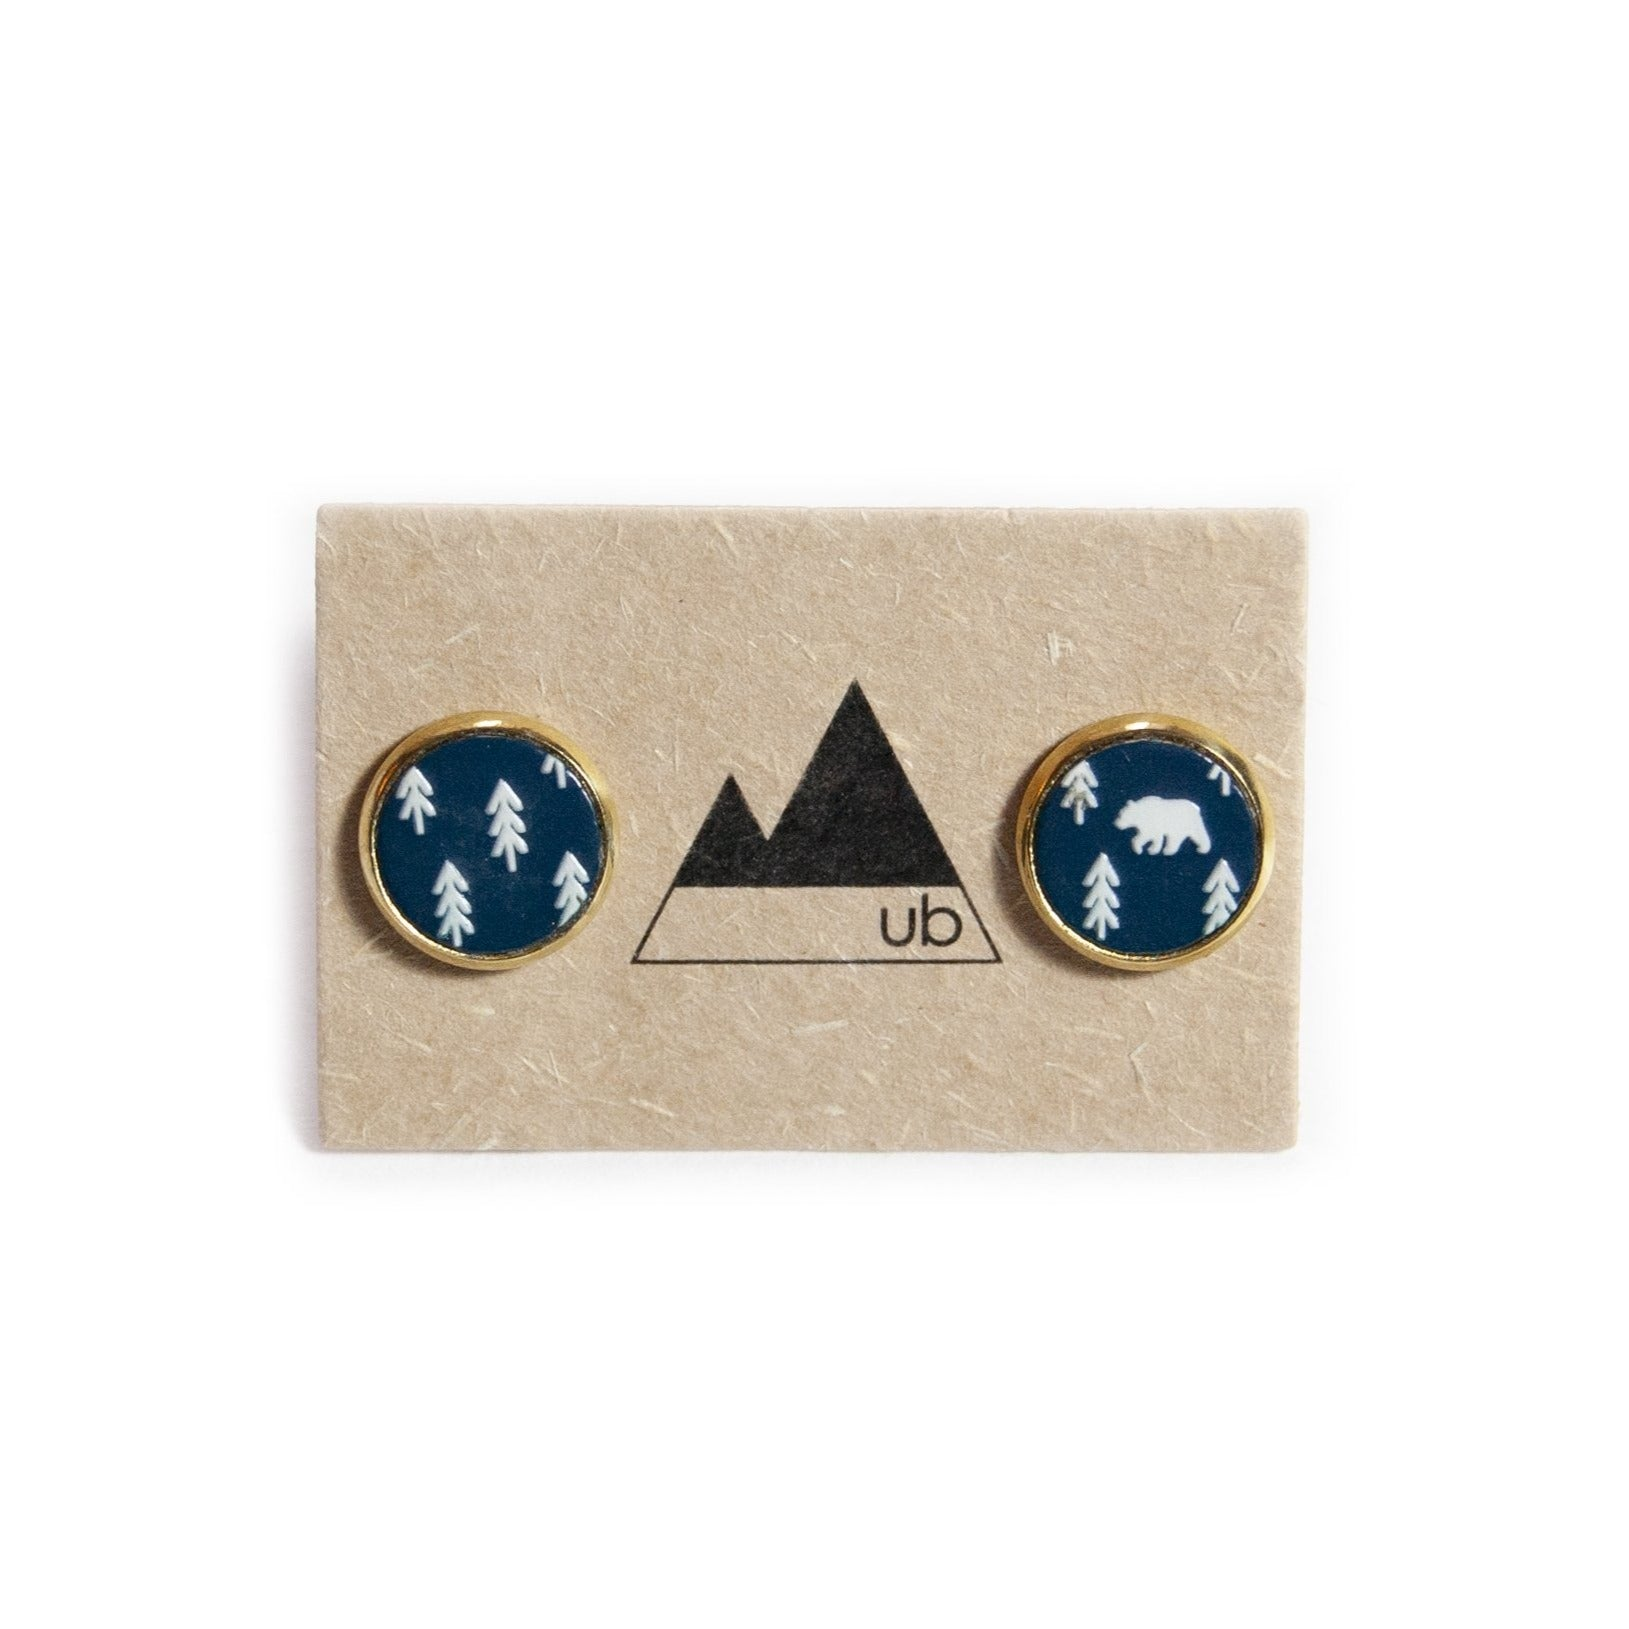 Day Hike Wood and Brass Stud Earrings - Ugly Bunny